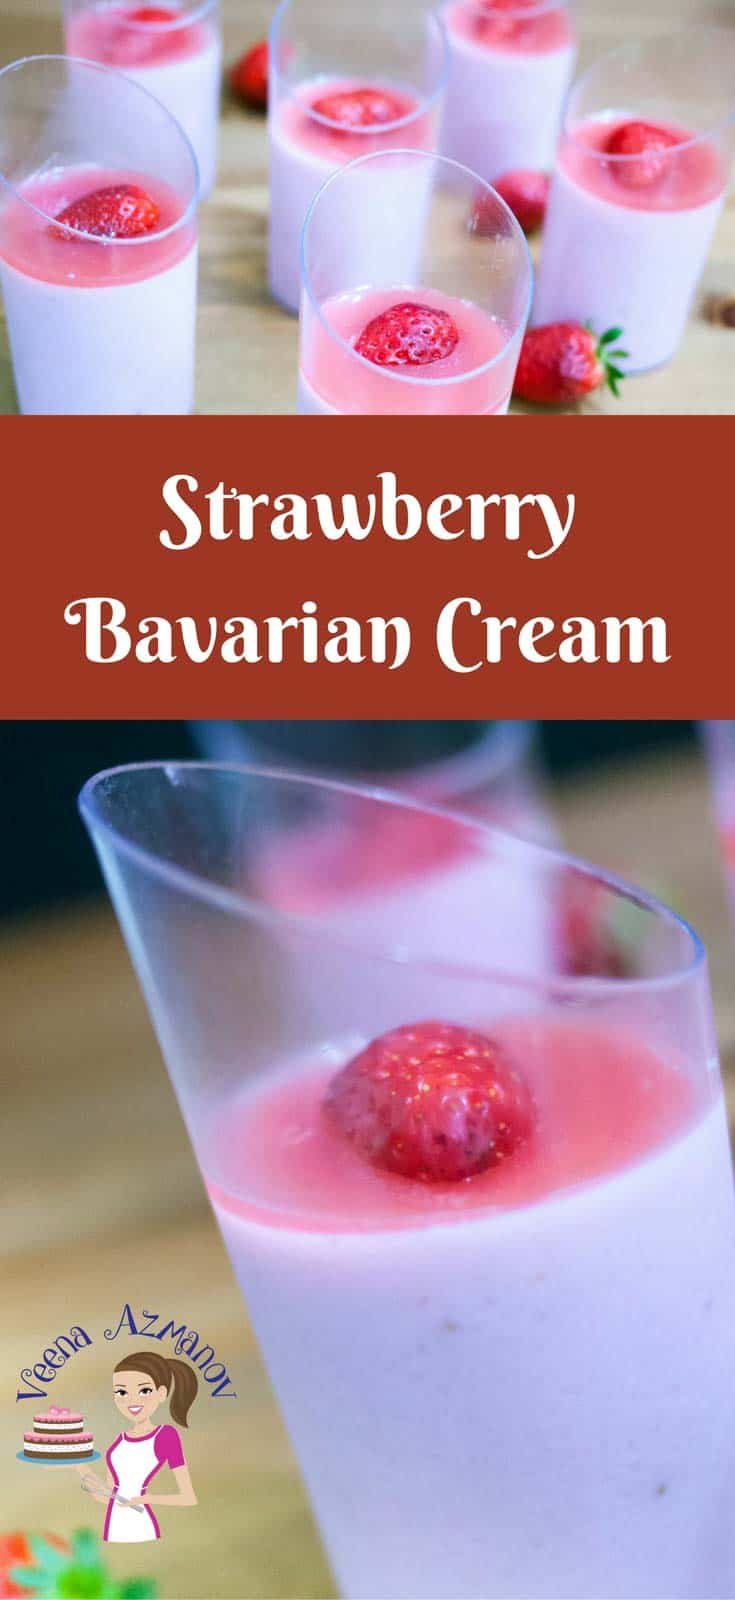 The Classic strawberry Bavarian cream often calledCreme Bavaria is a pastry cream based dessert with the luxury of whipped cream and strawberry. Rich, delicious but super easy to create. A few extra steps in the making but a truly impressive desert if you want to impress friend and family.